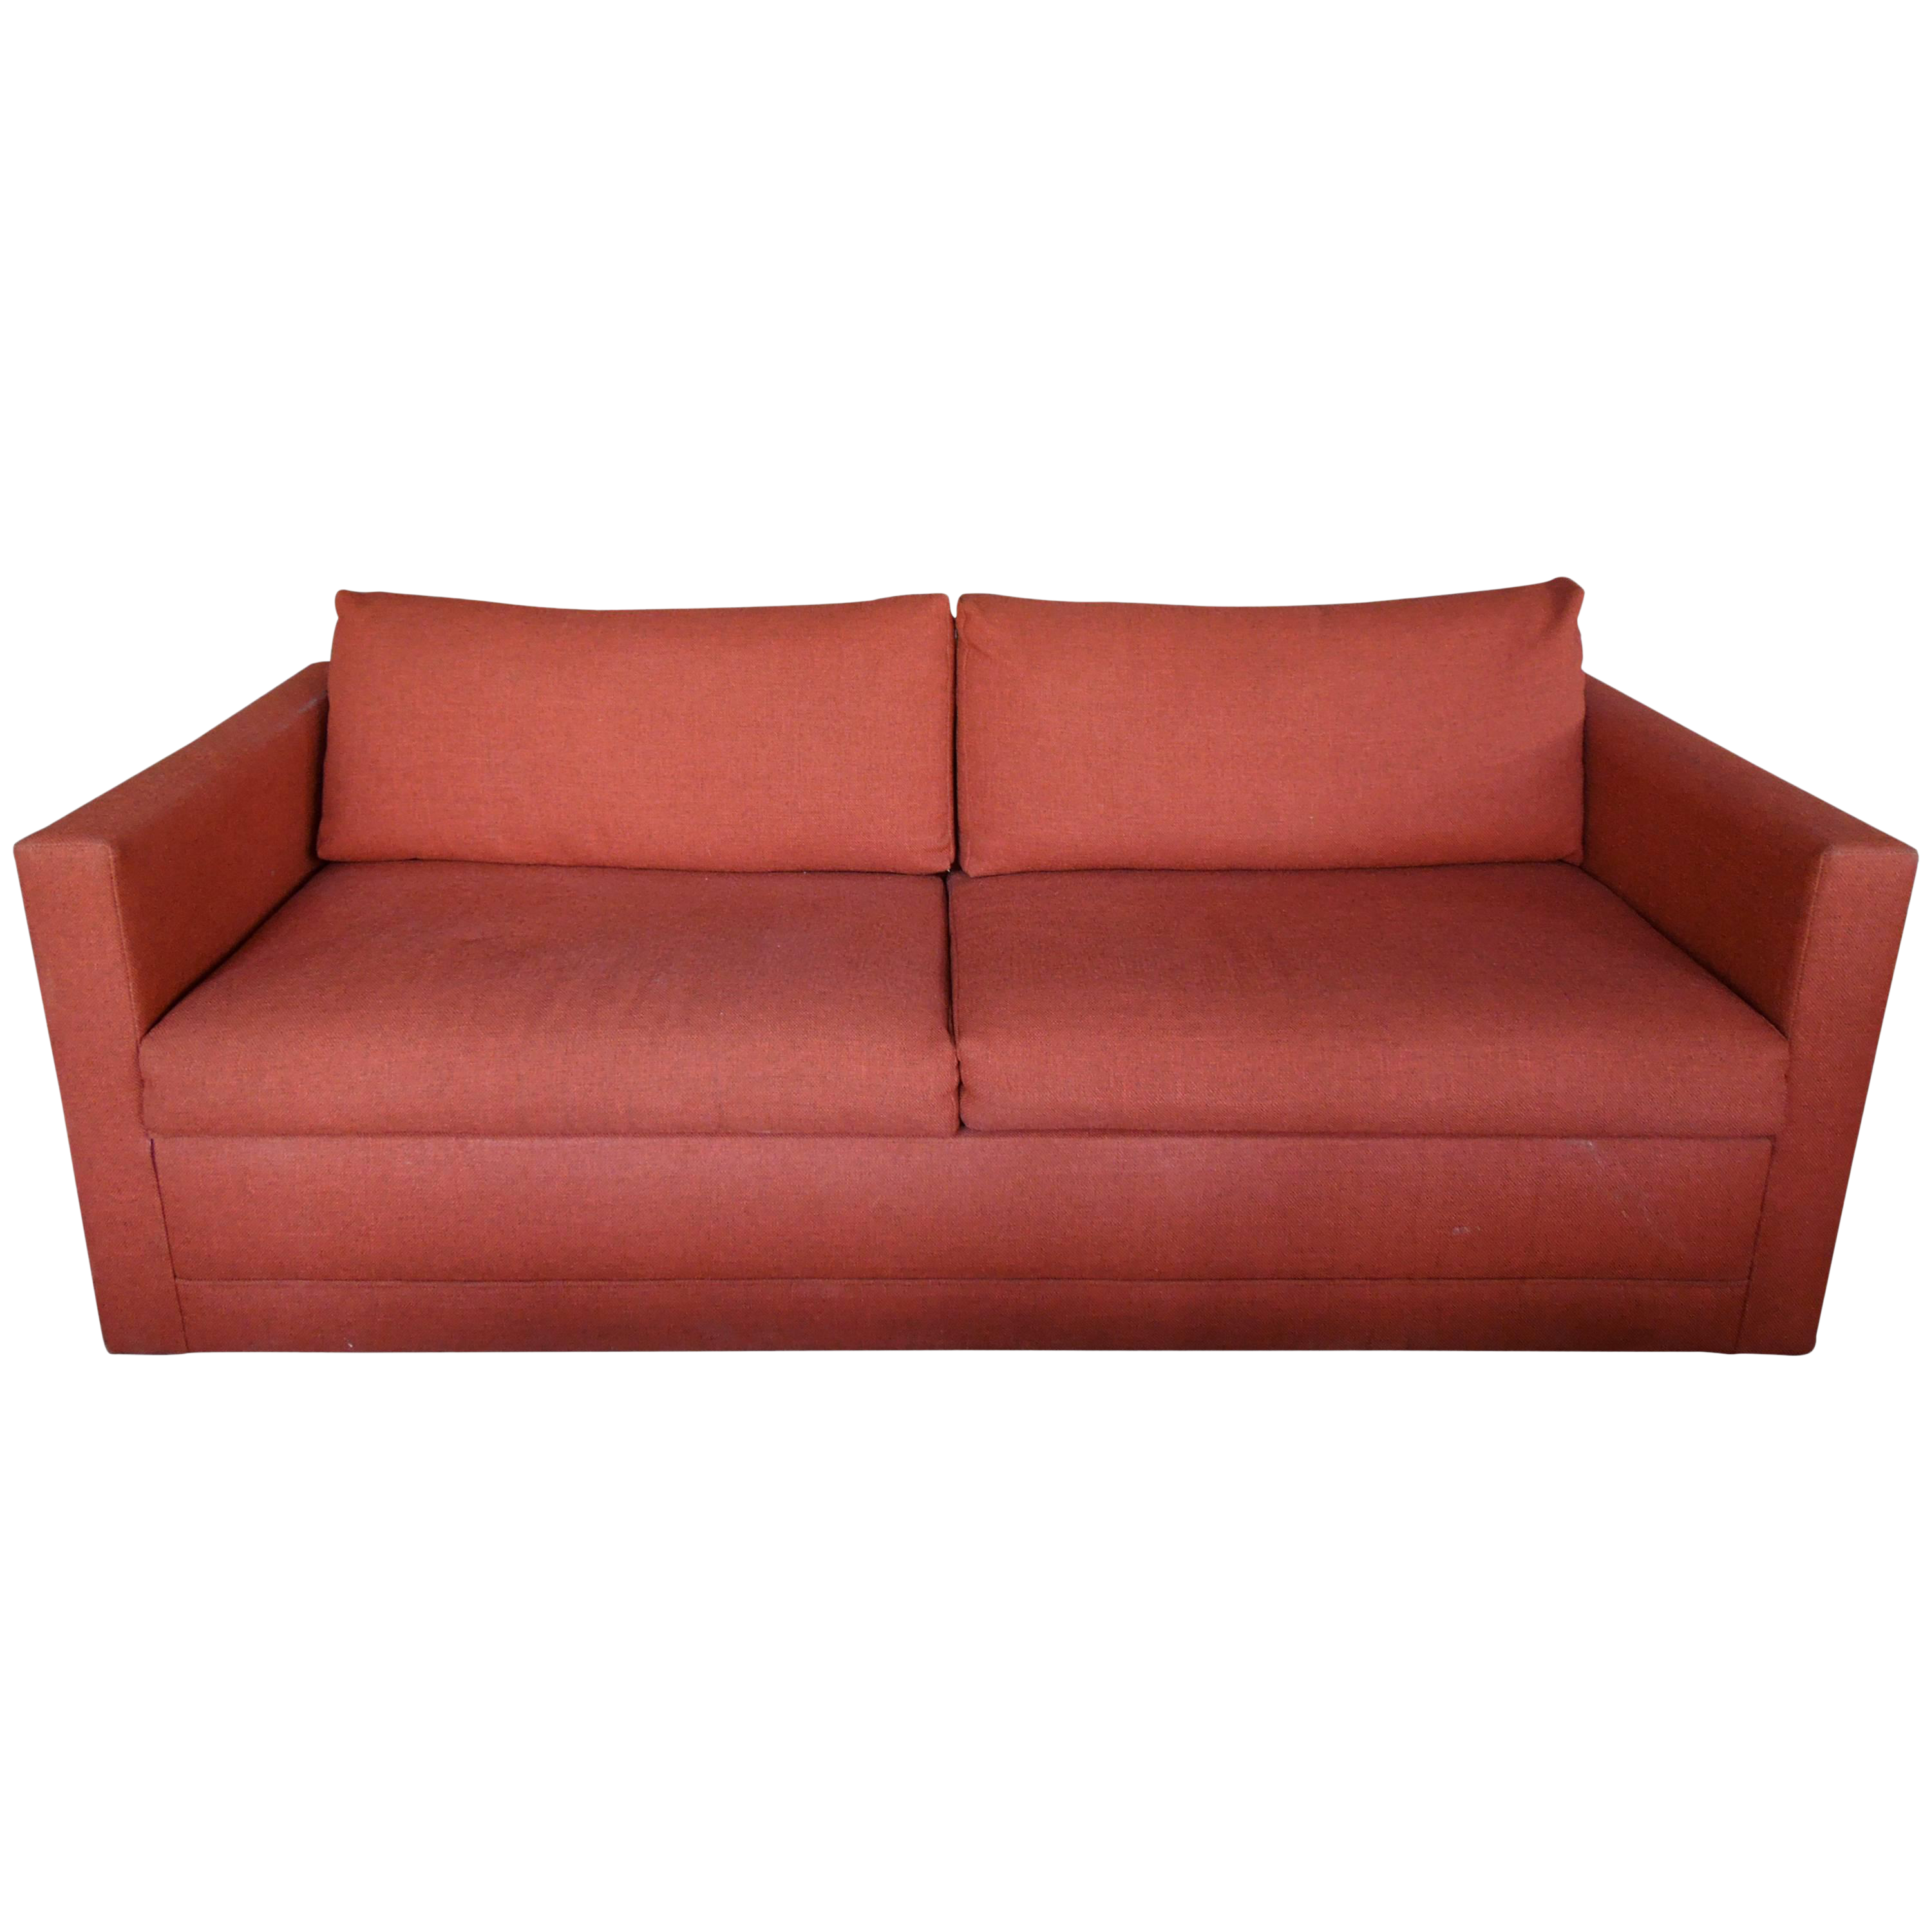 Strange 1970S Architectural Modern Rust Color Tweed Sofa Bed Chairish Onthecornerstone Fun Painted Chair Ideas Images Onthecornerstoneorg